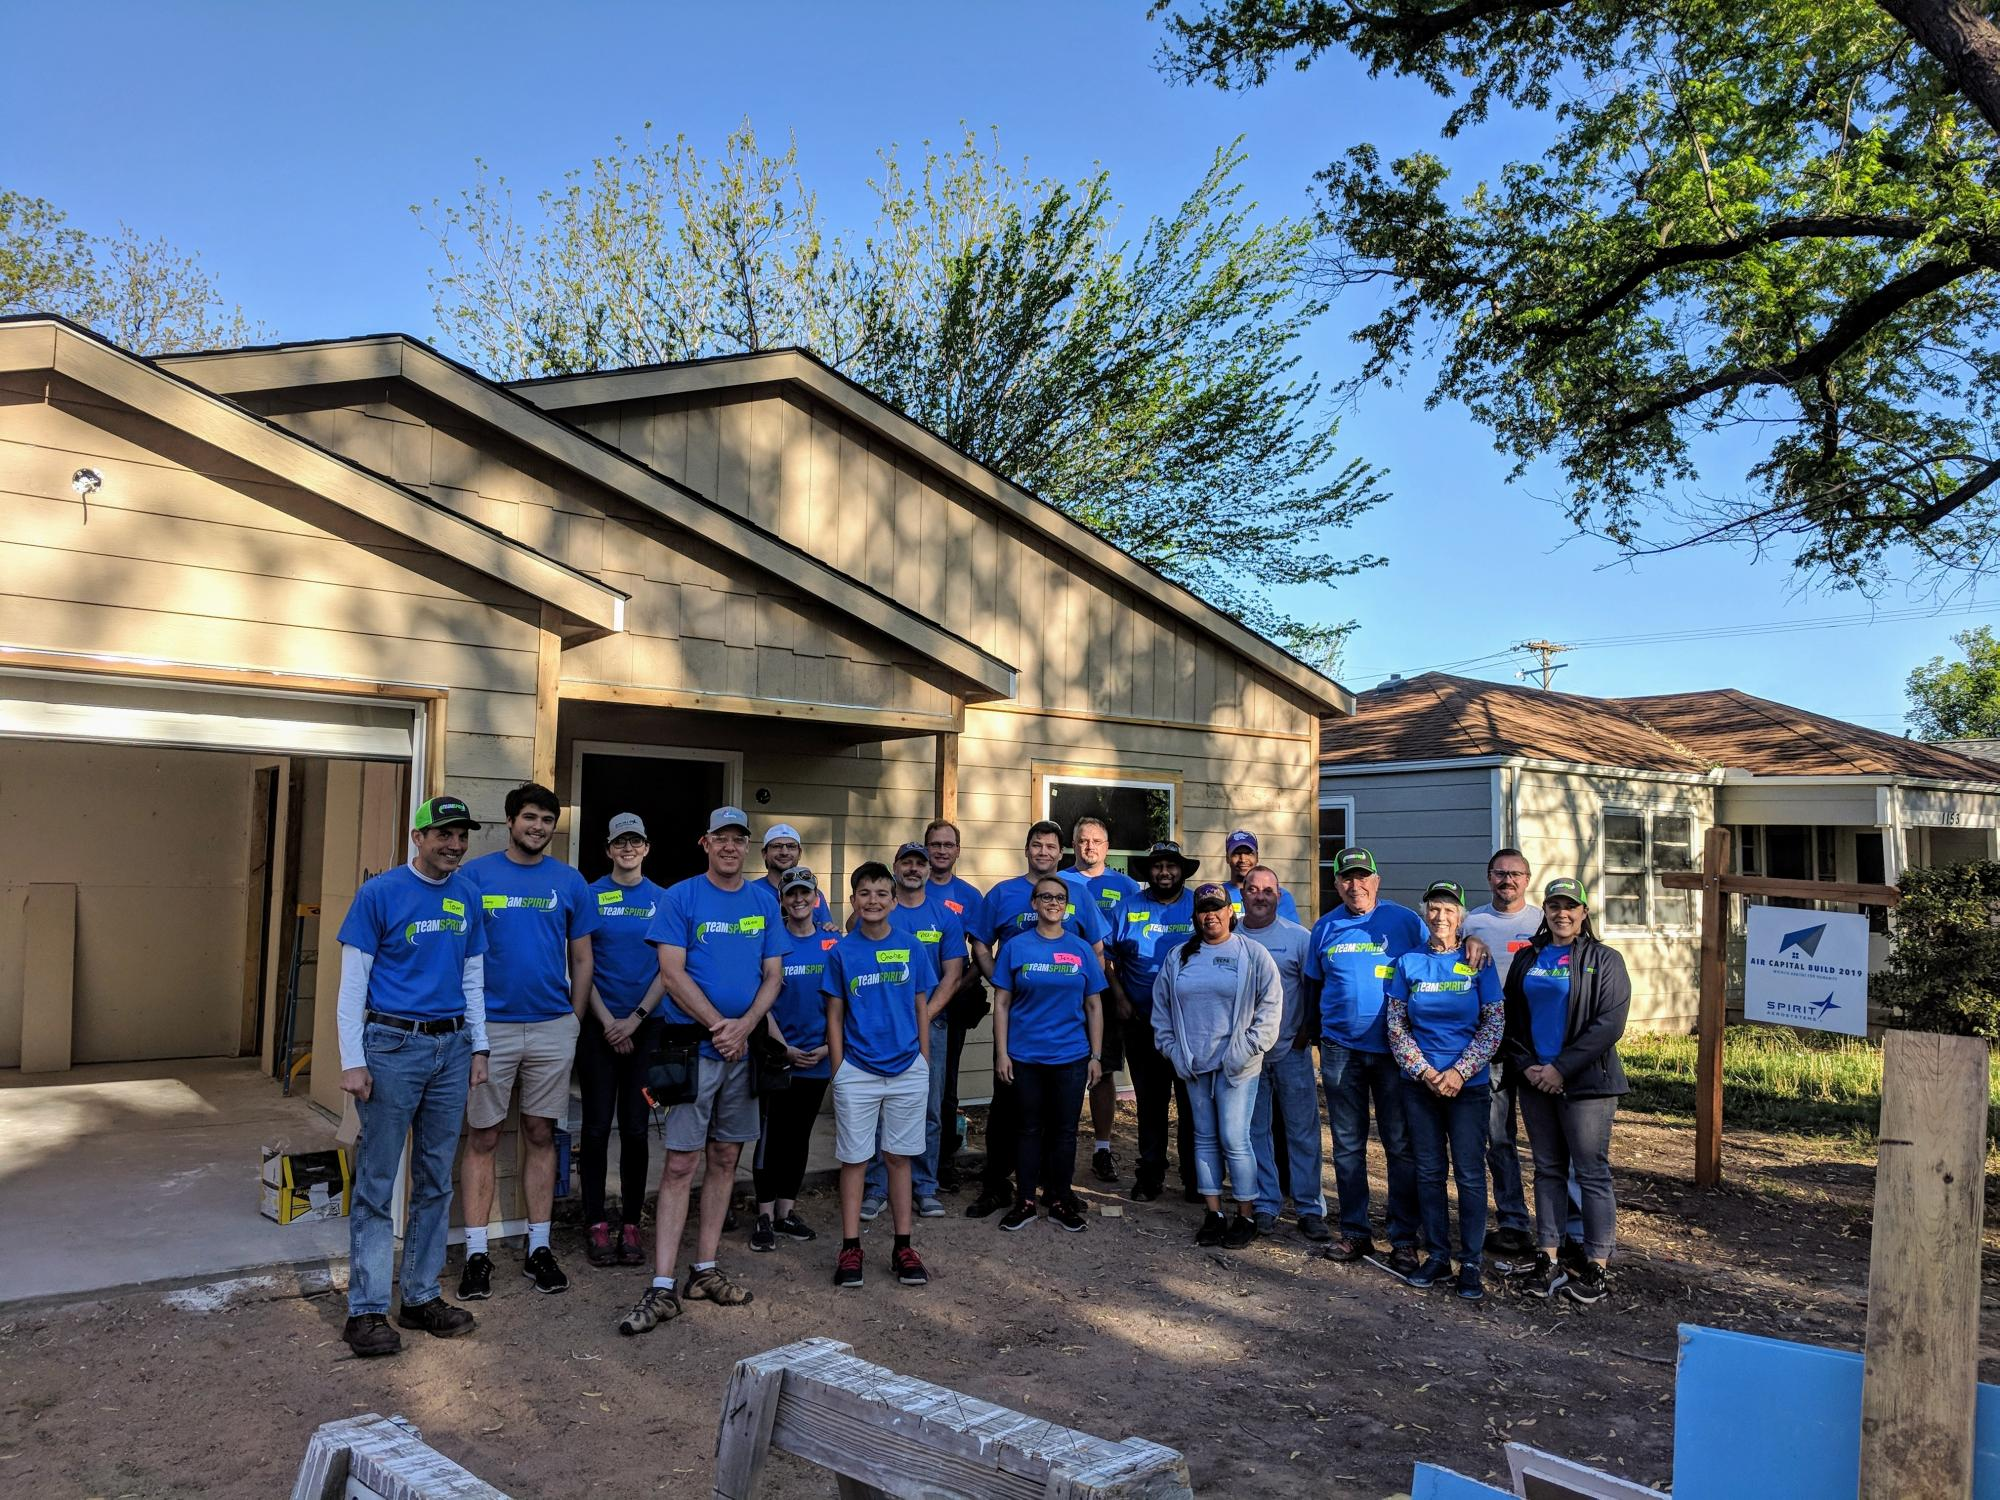 Spirit AeroSystems of Wichita Kansas pose with Tom Gentile and fellow employees at the Habitat for Humanity Air Capital Build in 2019